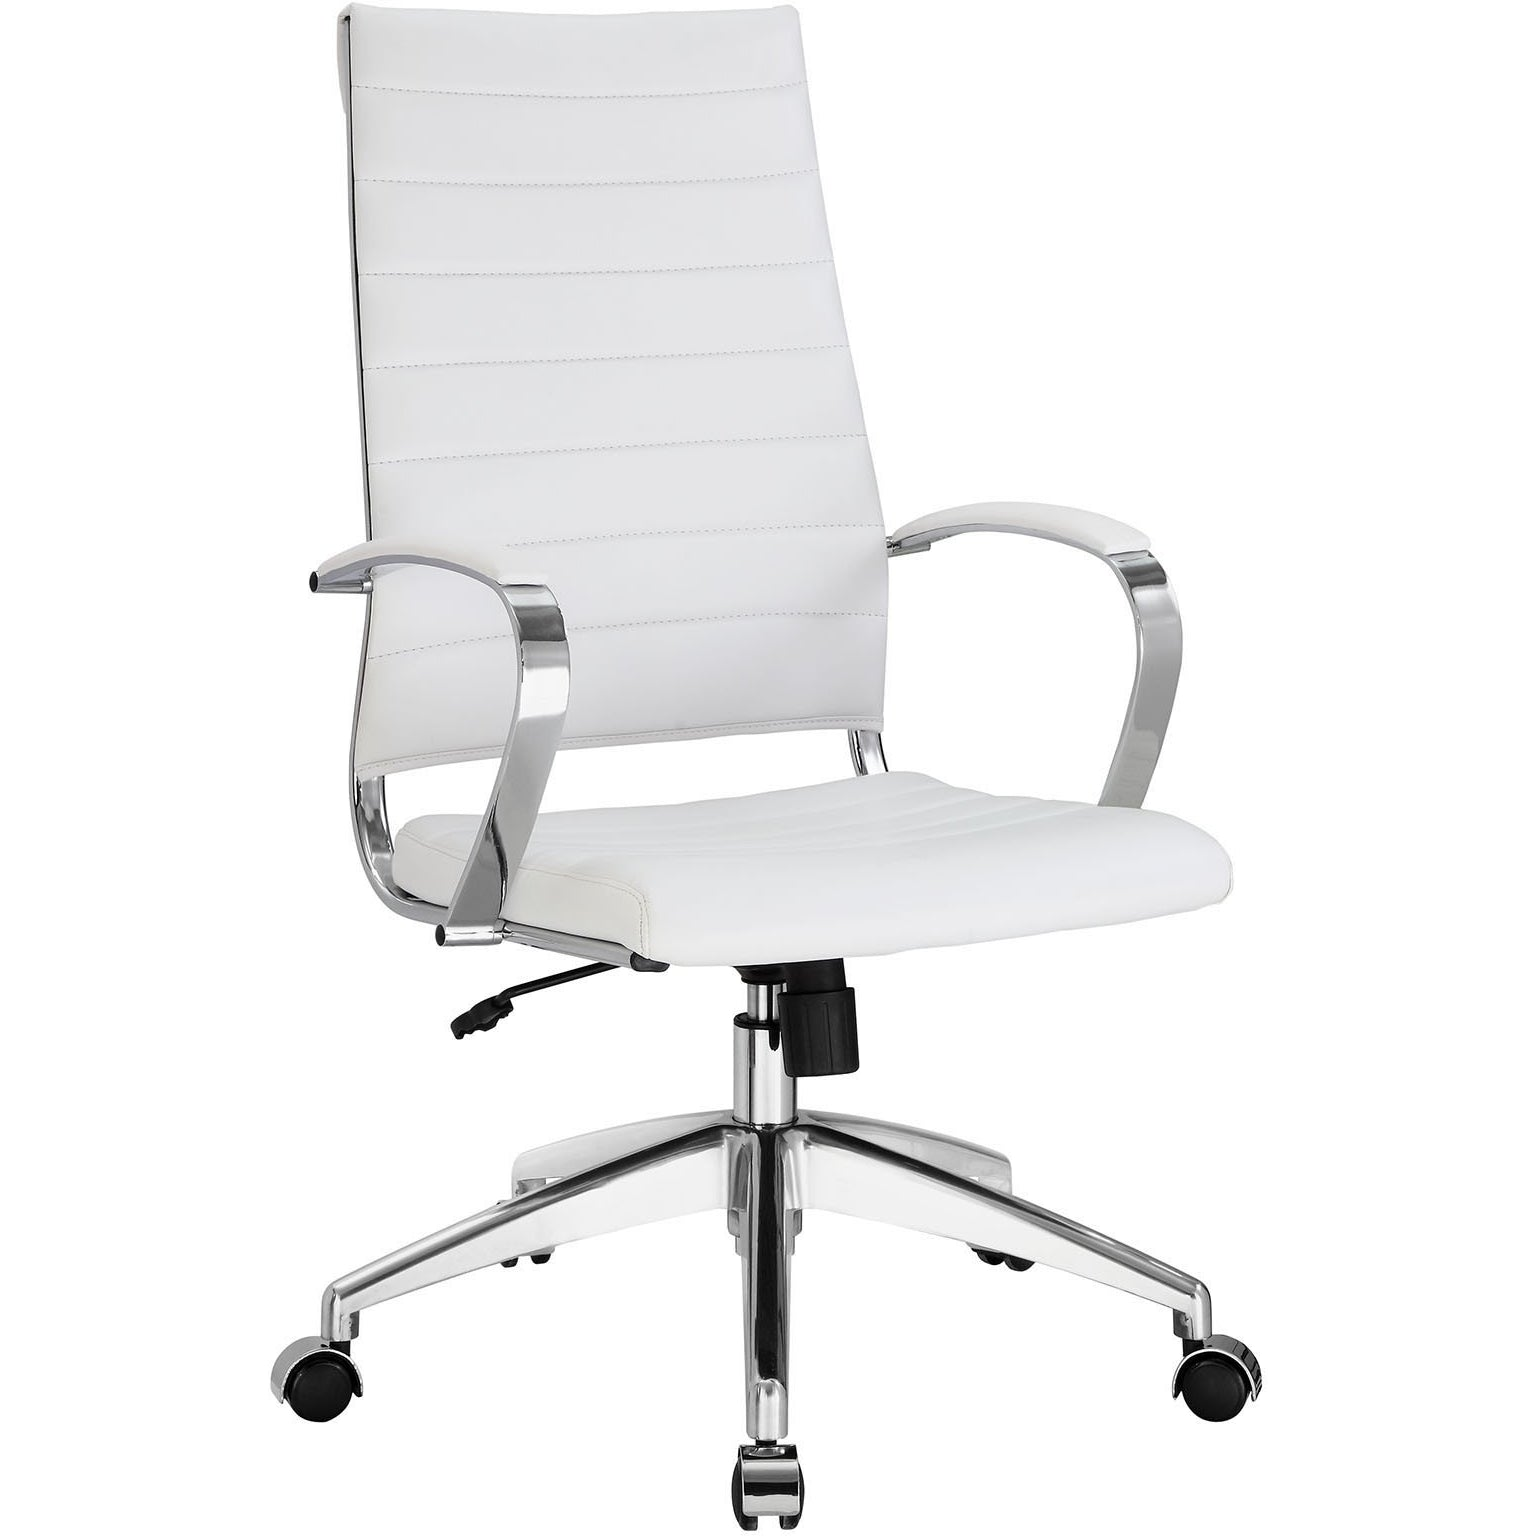 co view pcok larger office r modway chair